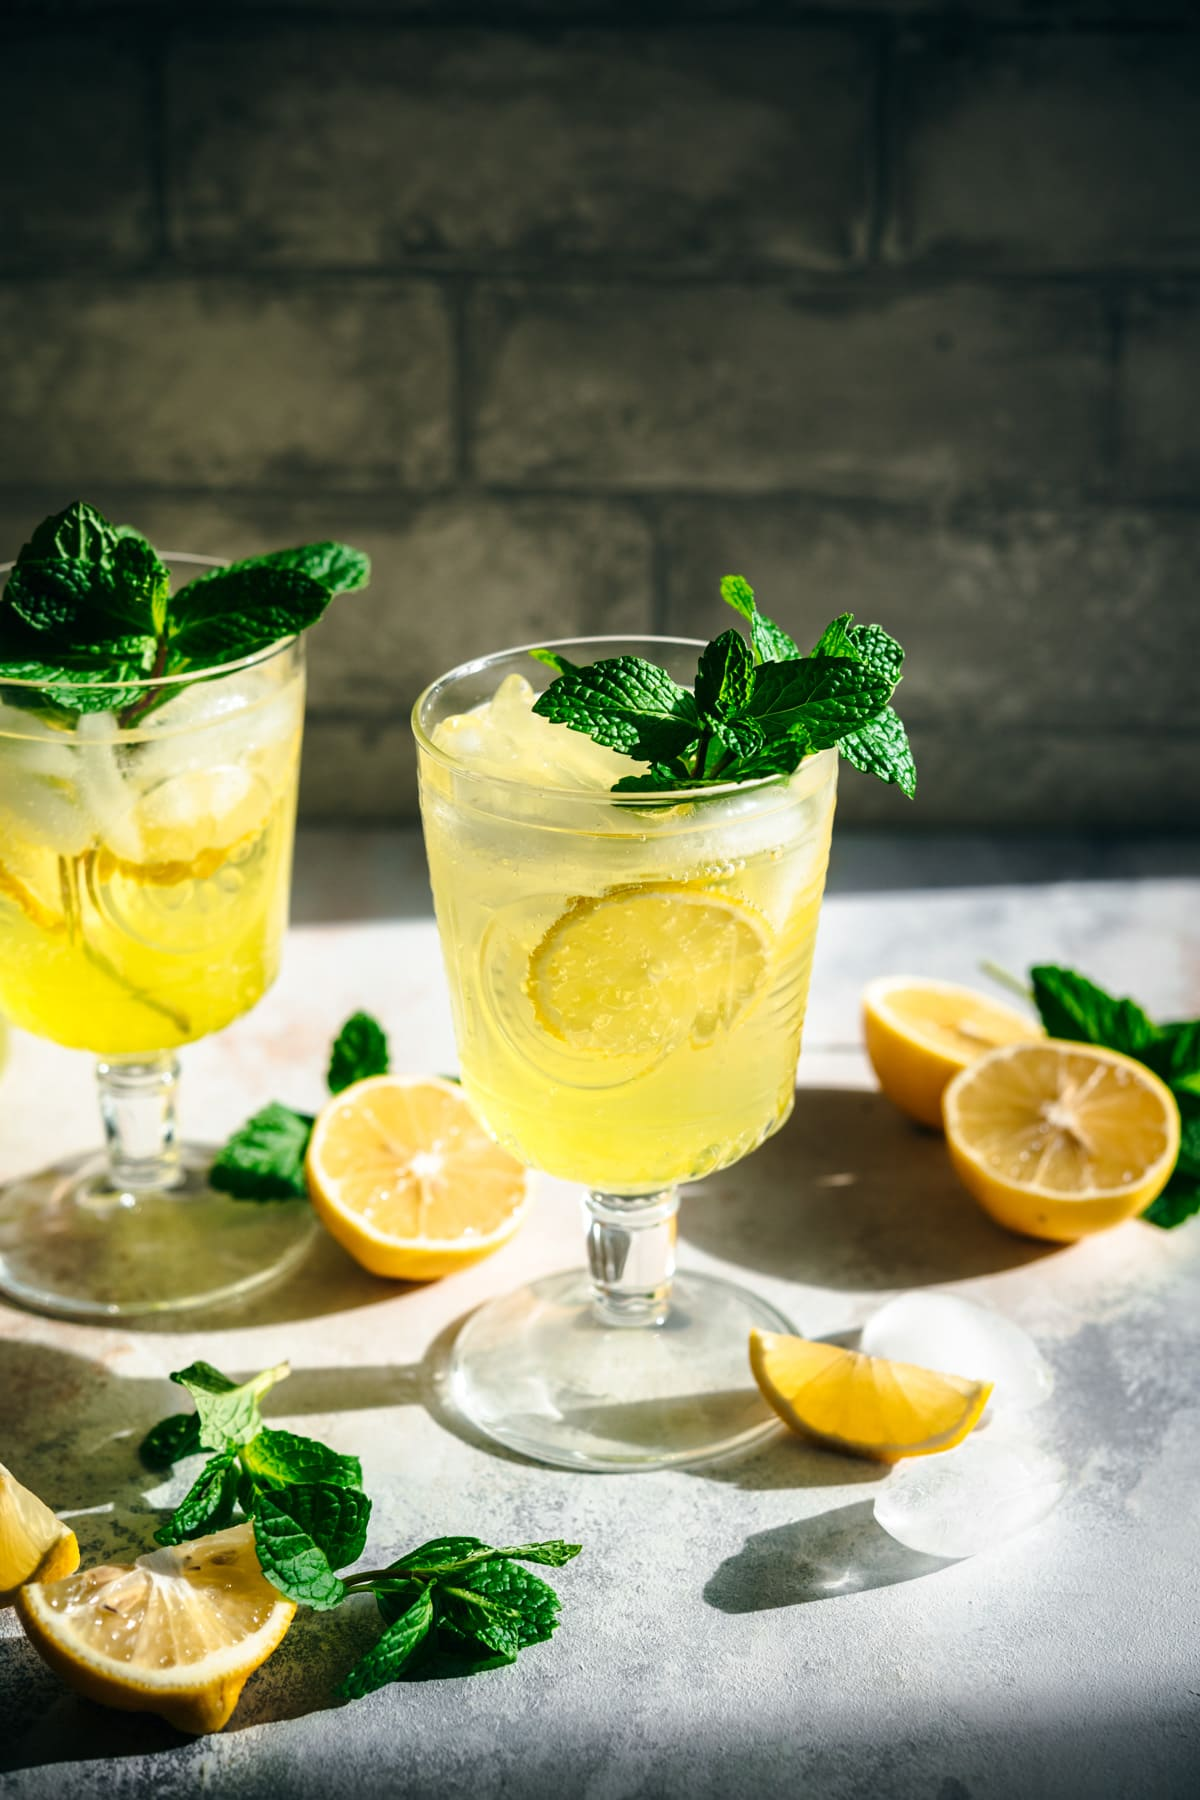 side view of limoncello spritz cocktail garnished with fresh mint.